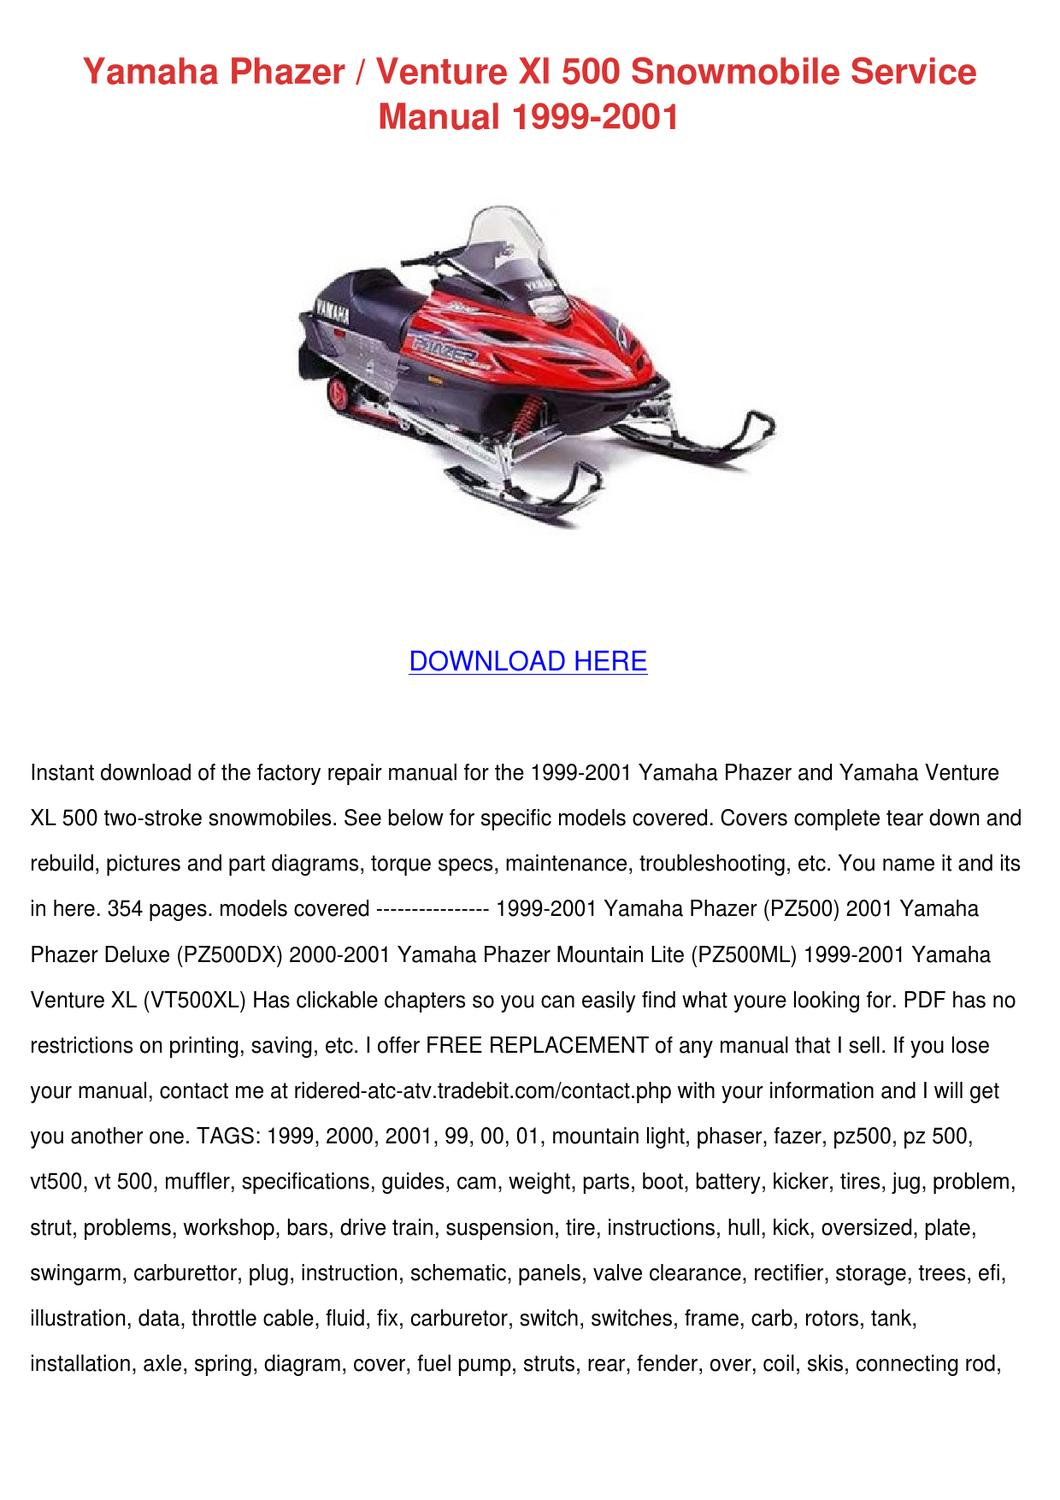 2001 Yamaha Phazer 500 Wiring Diagram Worksheet And Two Stroke Carburetor Free Download Schematic Venture Xl Snowmobile Servi By Meghan Capehart Issuu Rh Com Harness Generator